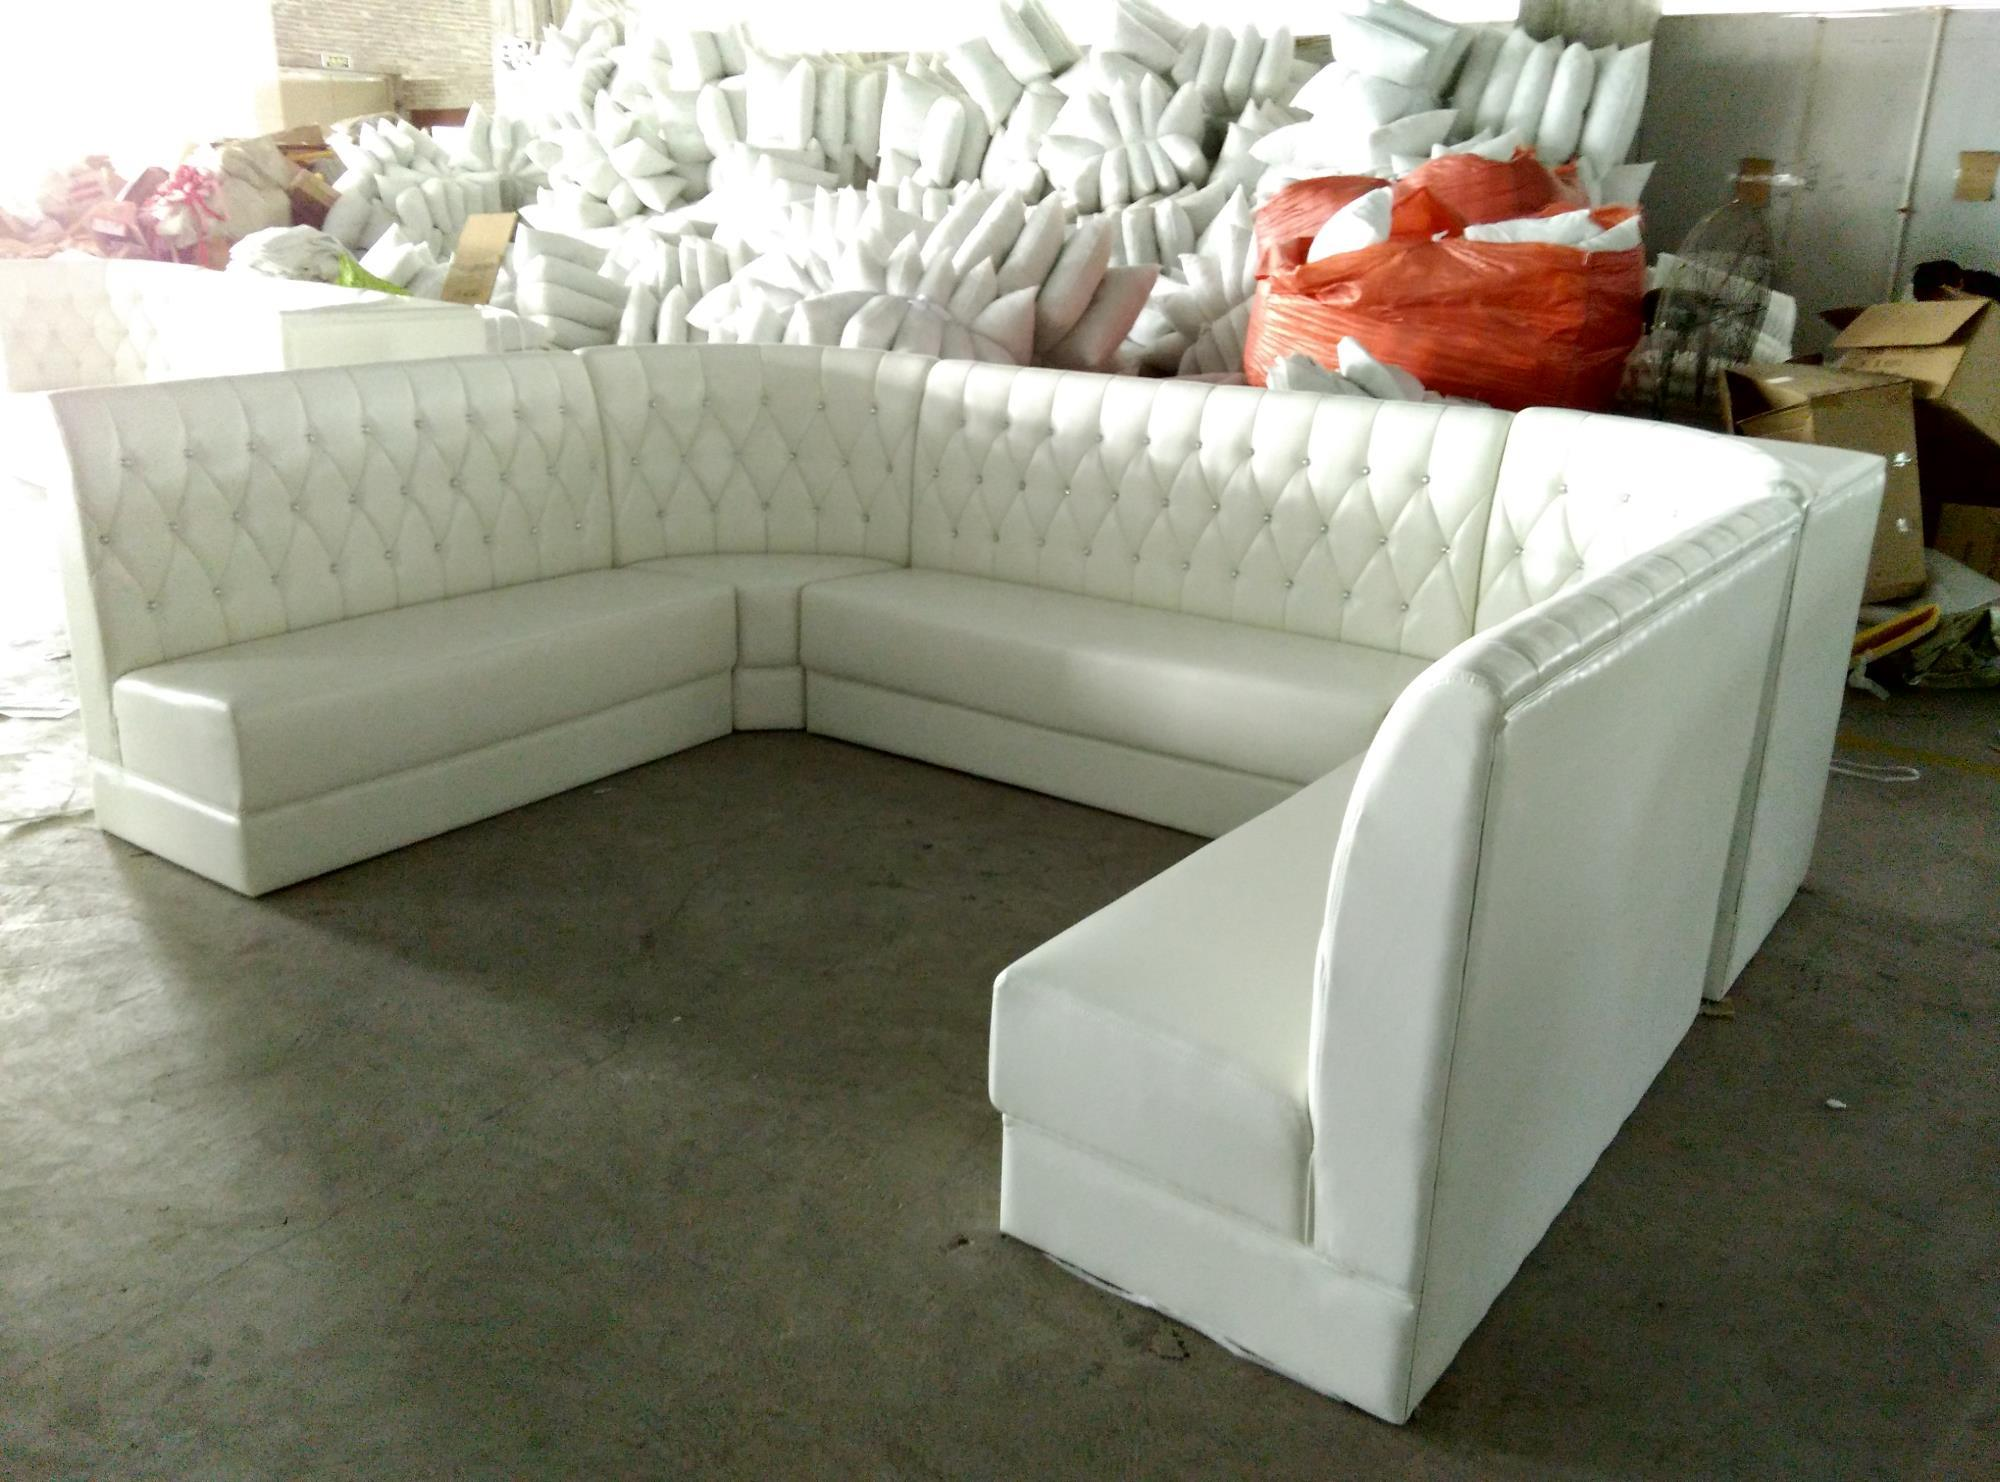 China Customized U Shape Restaurant Sofa Booth Seating in White